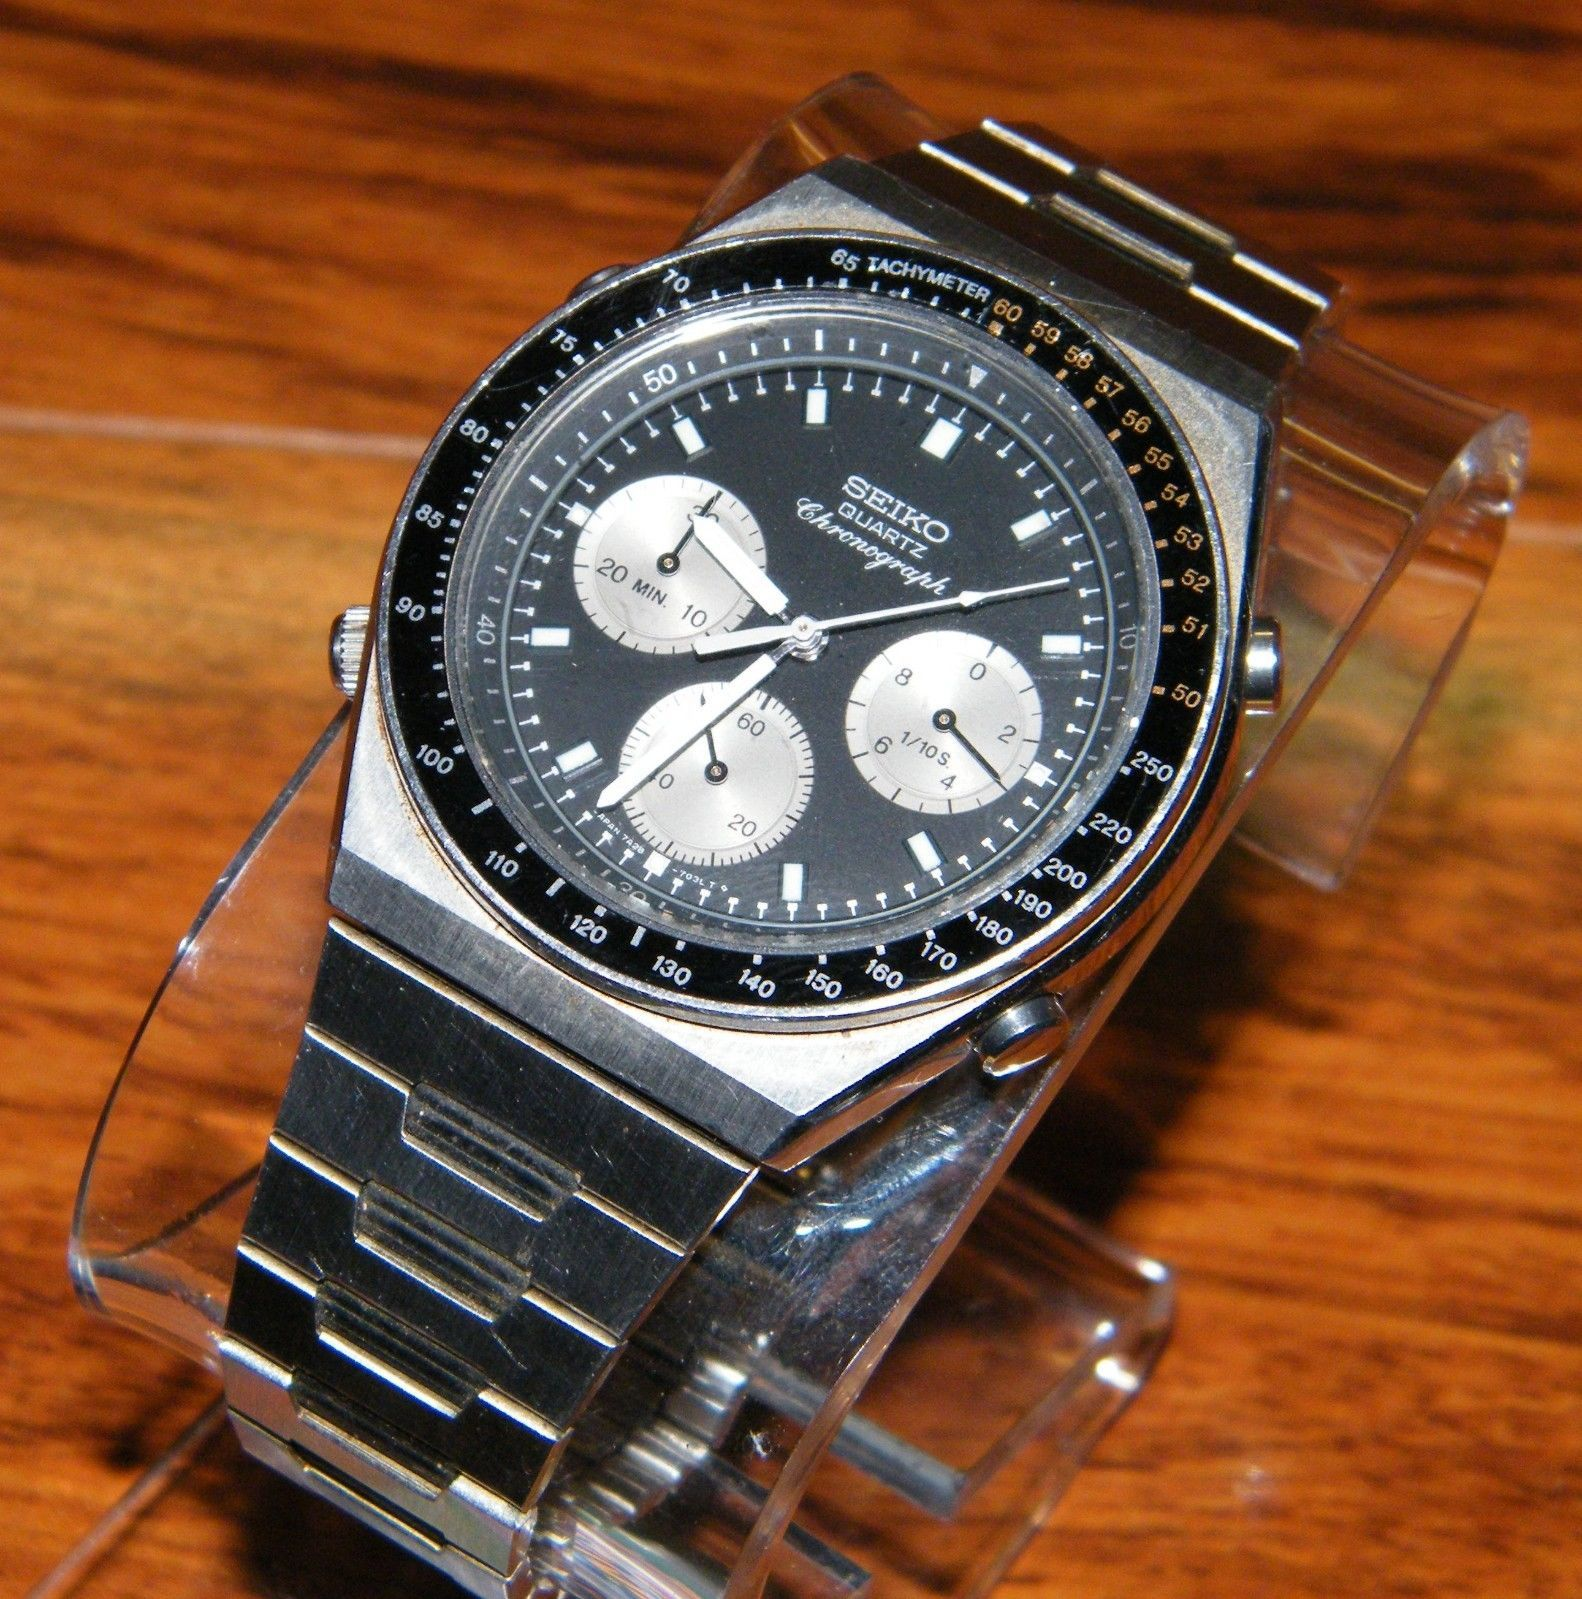 Seiko 7A28-703B black face